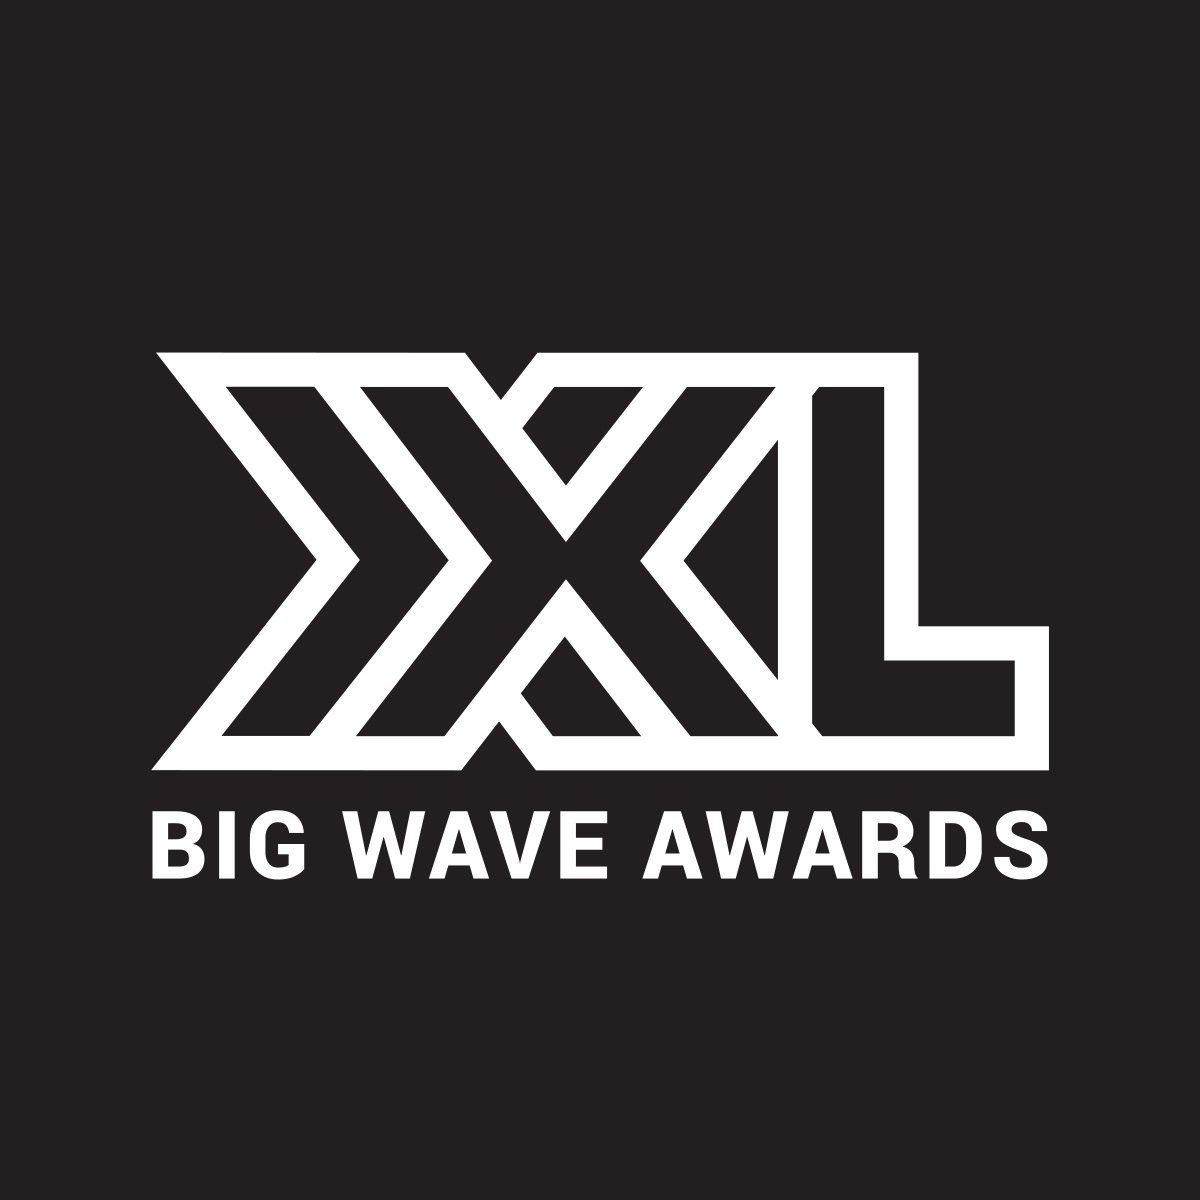 Big Xxl Xxl Big Wave Awards Xxlbigwave Twitter